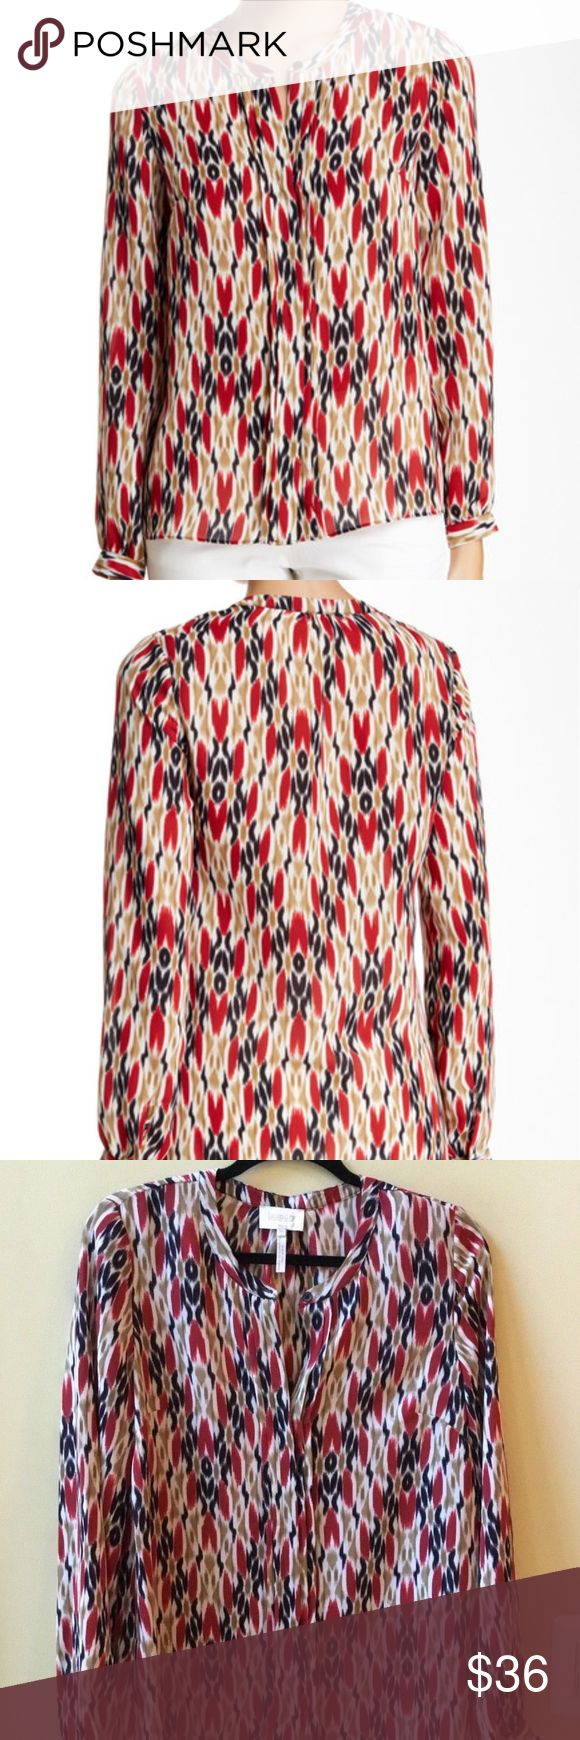 """NWT LAUNDRY SHELLI SEGAL PRINTED BLOUSE SIZE 10 NWT LAUNDRY BY SHELLI SEGAL SIZE 10 CHEST: 40"""" ARMPIT TO ARMPIT: 20"""" LENGTH: 27"""" BEIGE, BLACK, WHITE AND RED BLOUSE SPLIT NECK WITH FIVE HIDDEN BUTTON FRONT ONE BUTTON AT NECK  LONG SLEEVES PLEATED IN FRONT SIDE SLITS 100% POLYESTER  MACHINE WASH COLD  MSRP:$79 Laundry By Shelli Segal Tops Blouses"""